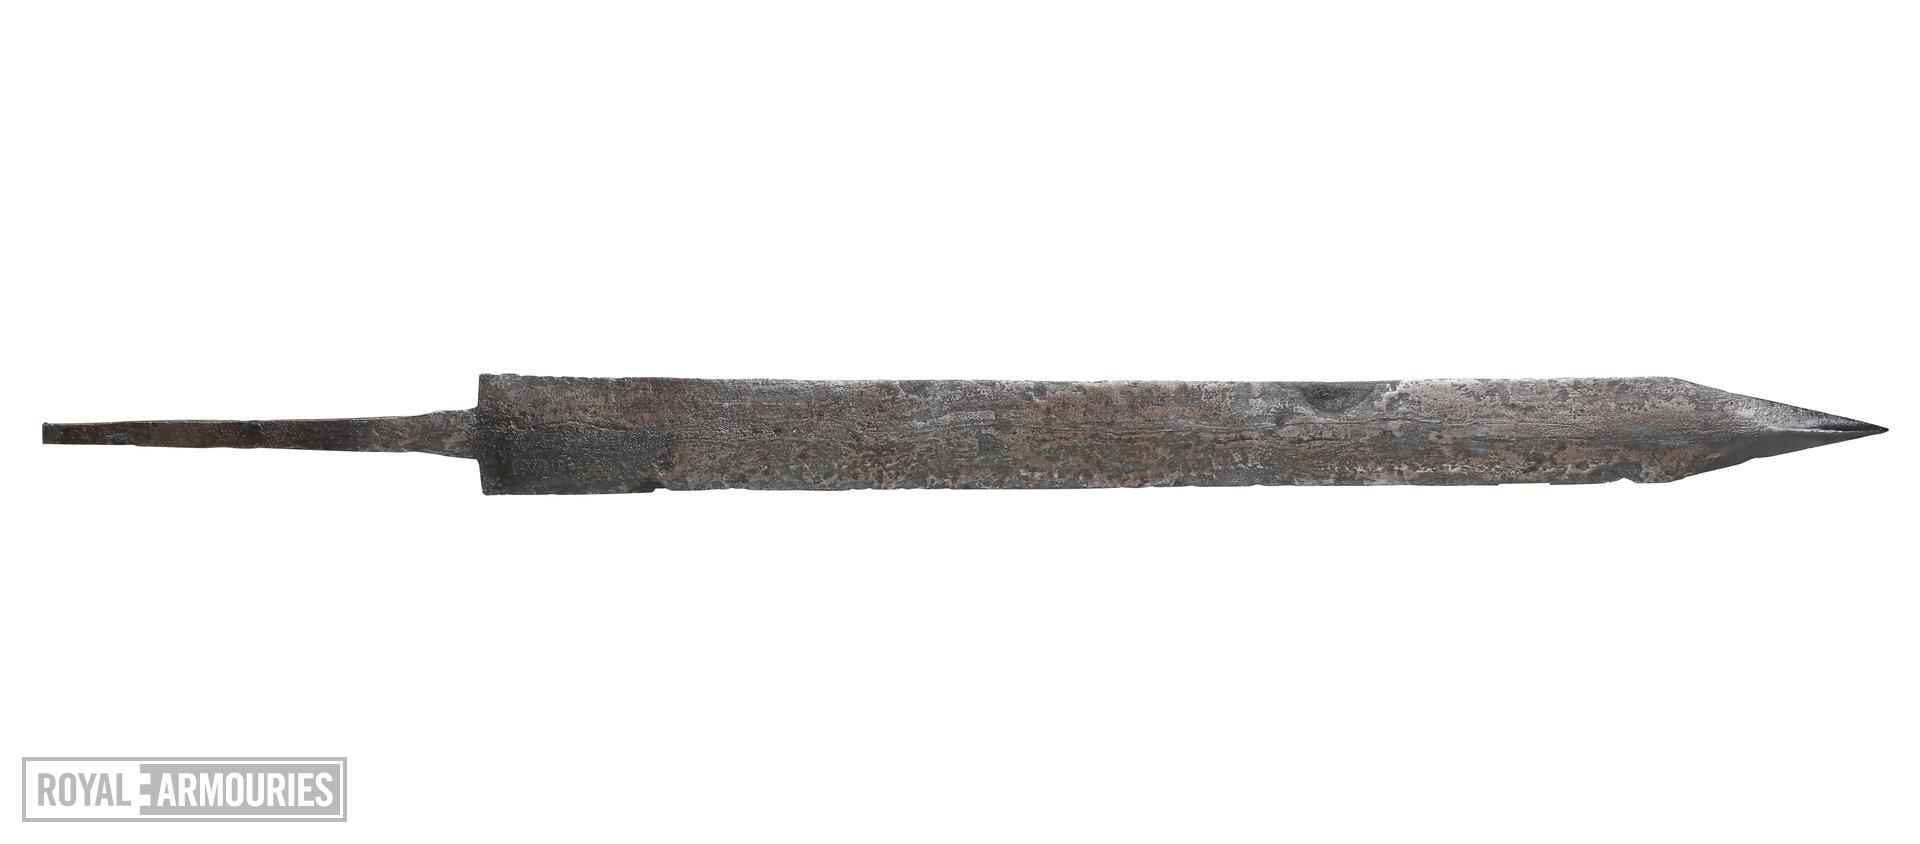 Gladius and scabbard mounts of the 'Pompeii type', from the Alex Guttmann Collection. IX.5583